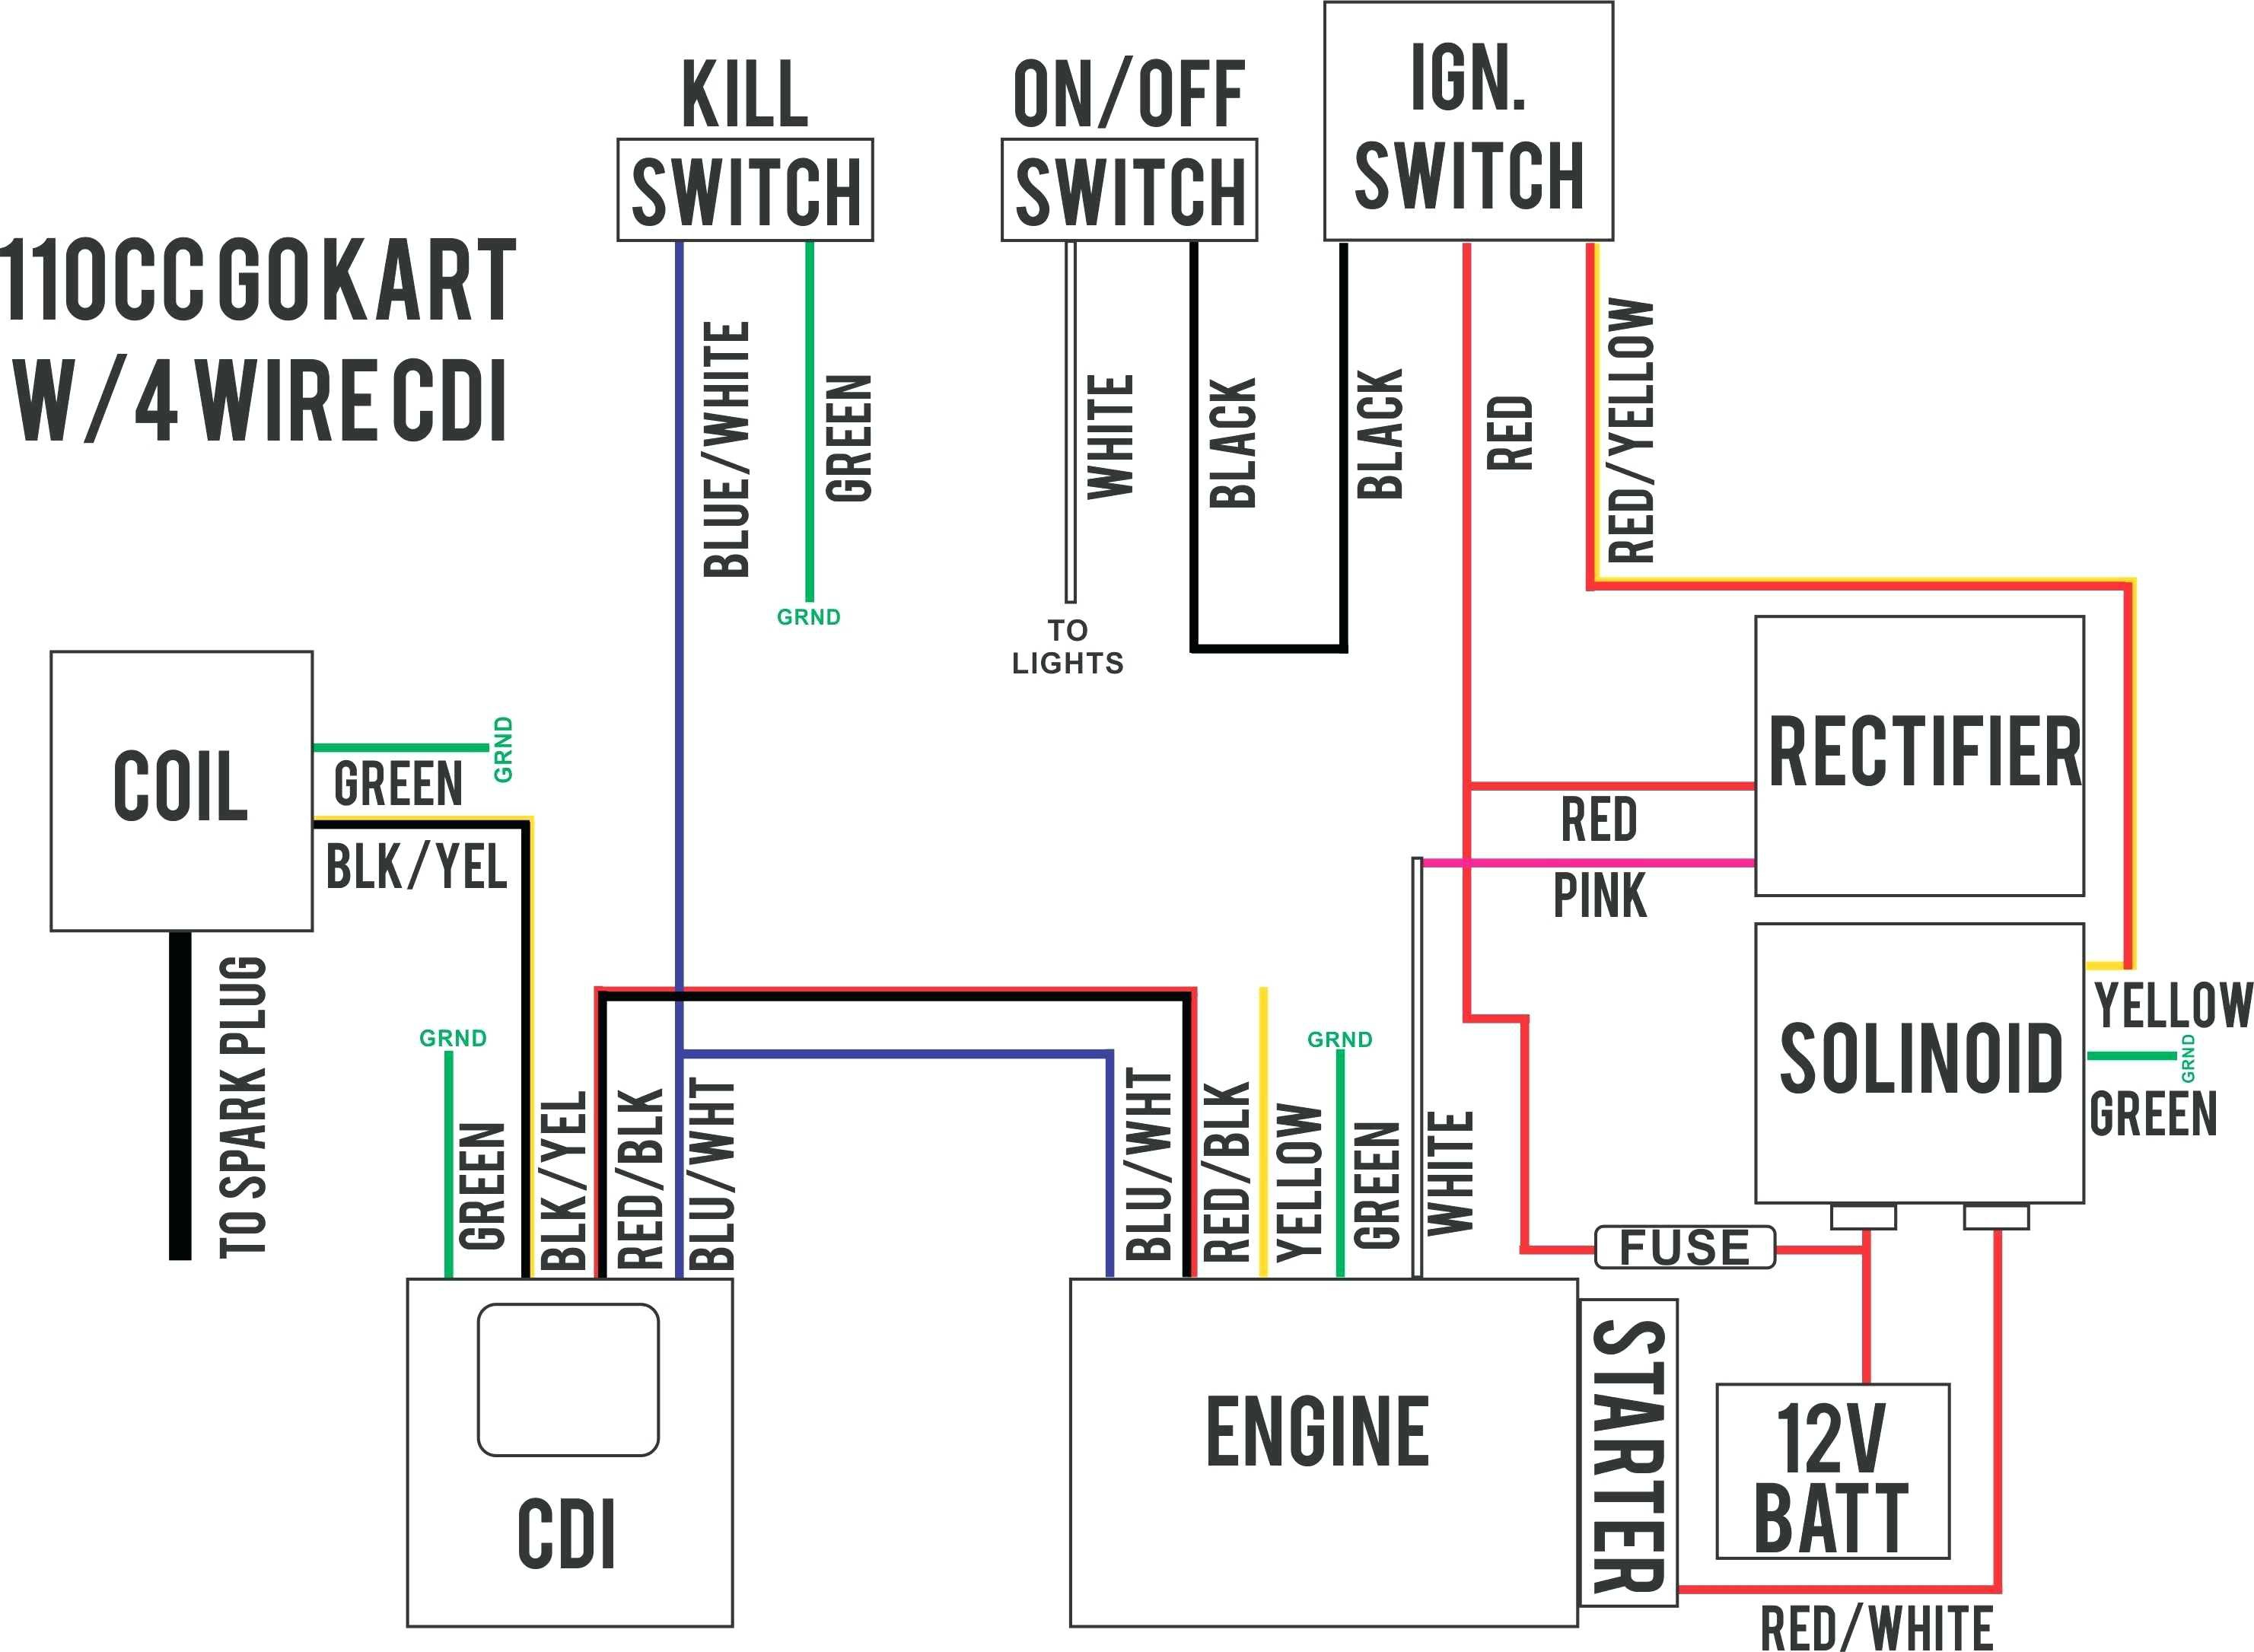 Bulldog Keyless Entry Wiring Diagram from wholefoodsonabudget.com